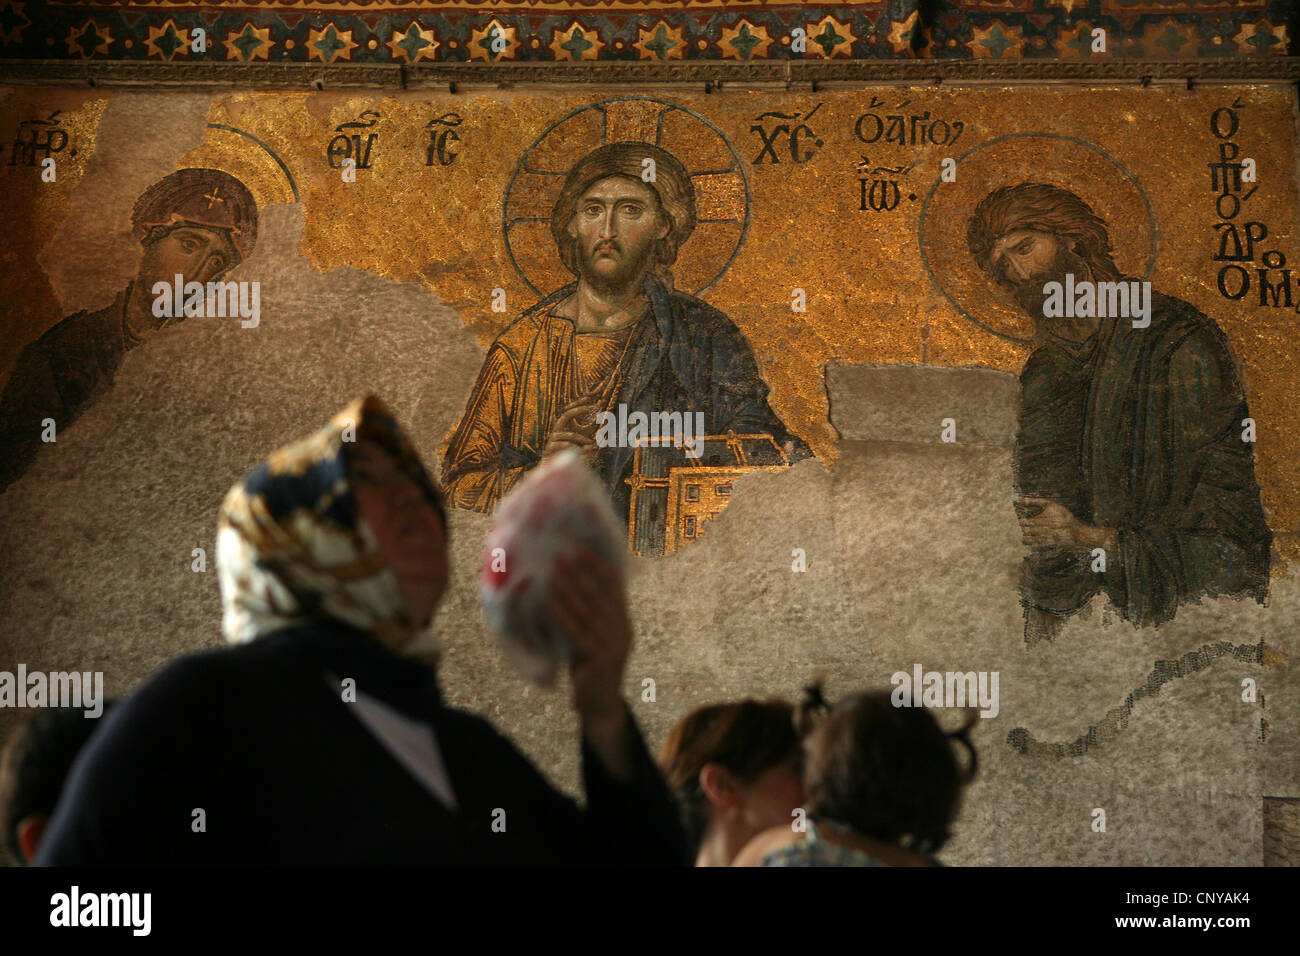 Byzantine Deesis mosaic on the upper galleries of Hagia Sophia in Istanbul, Turkey. Stock Photo